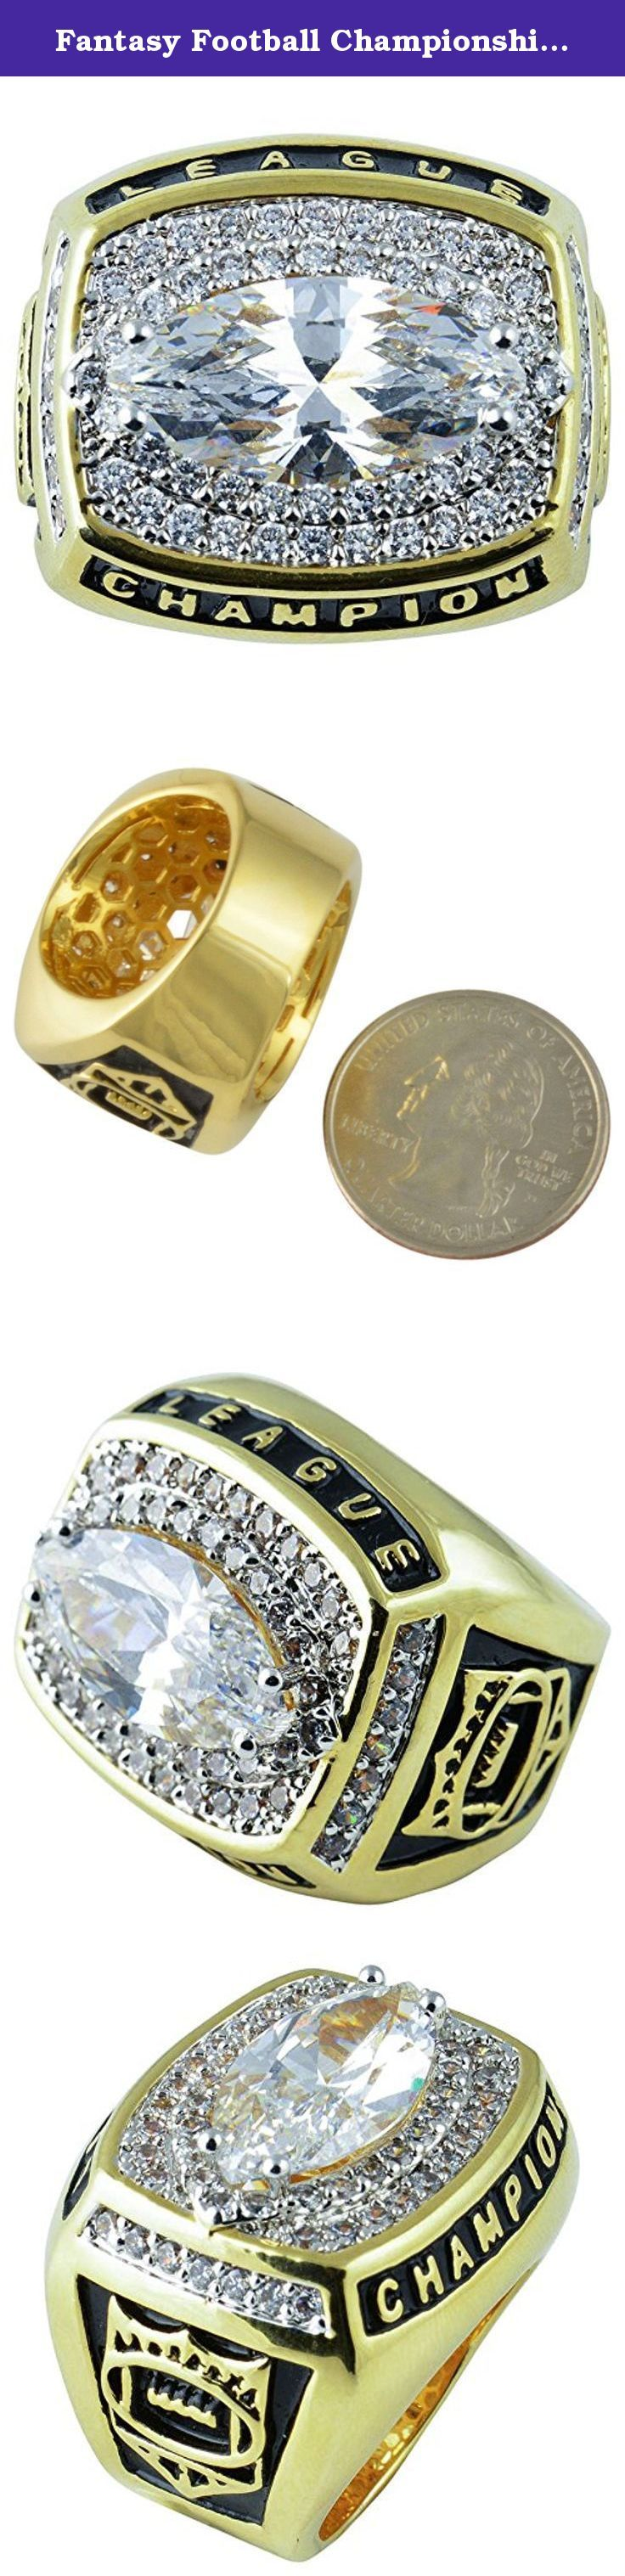 "Fantasy Football Championship Trophy Ring Gold Plate & CZ Size 12. Measurements are 1"" from the widest points."